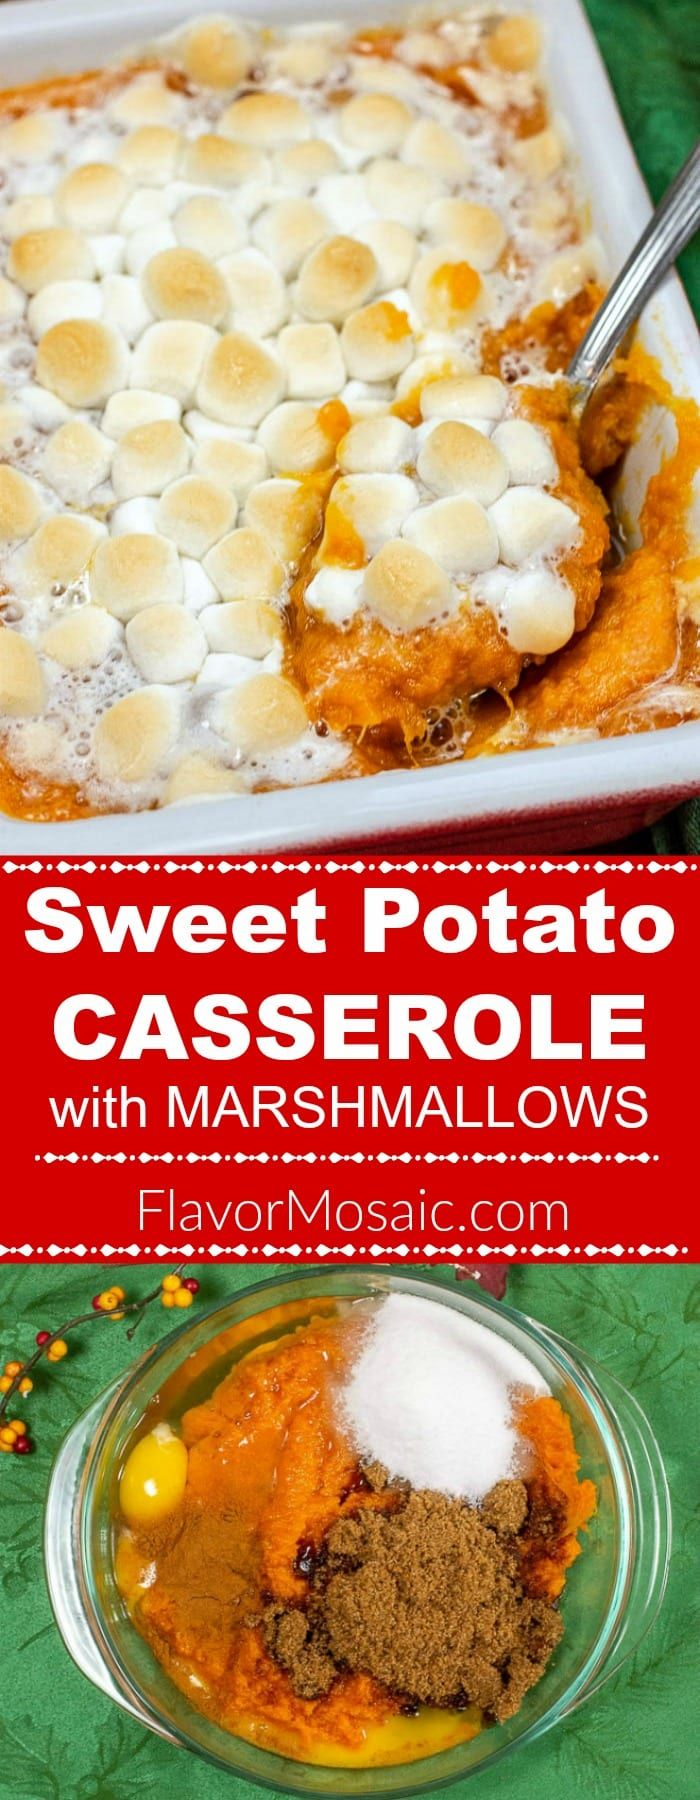 Sweet Potato Casserole with Marshmallows For Thanksgiving #sweetpotatocasserolewithmarshmallows